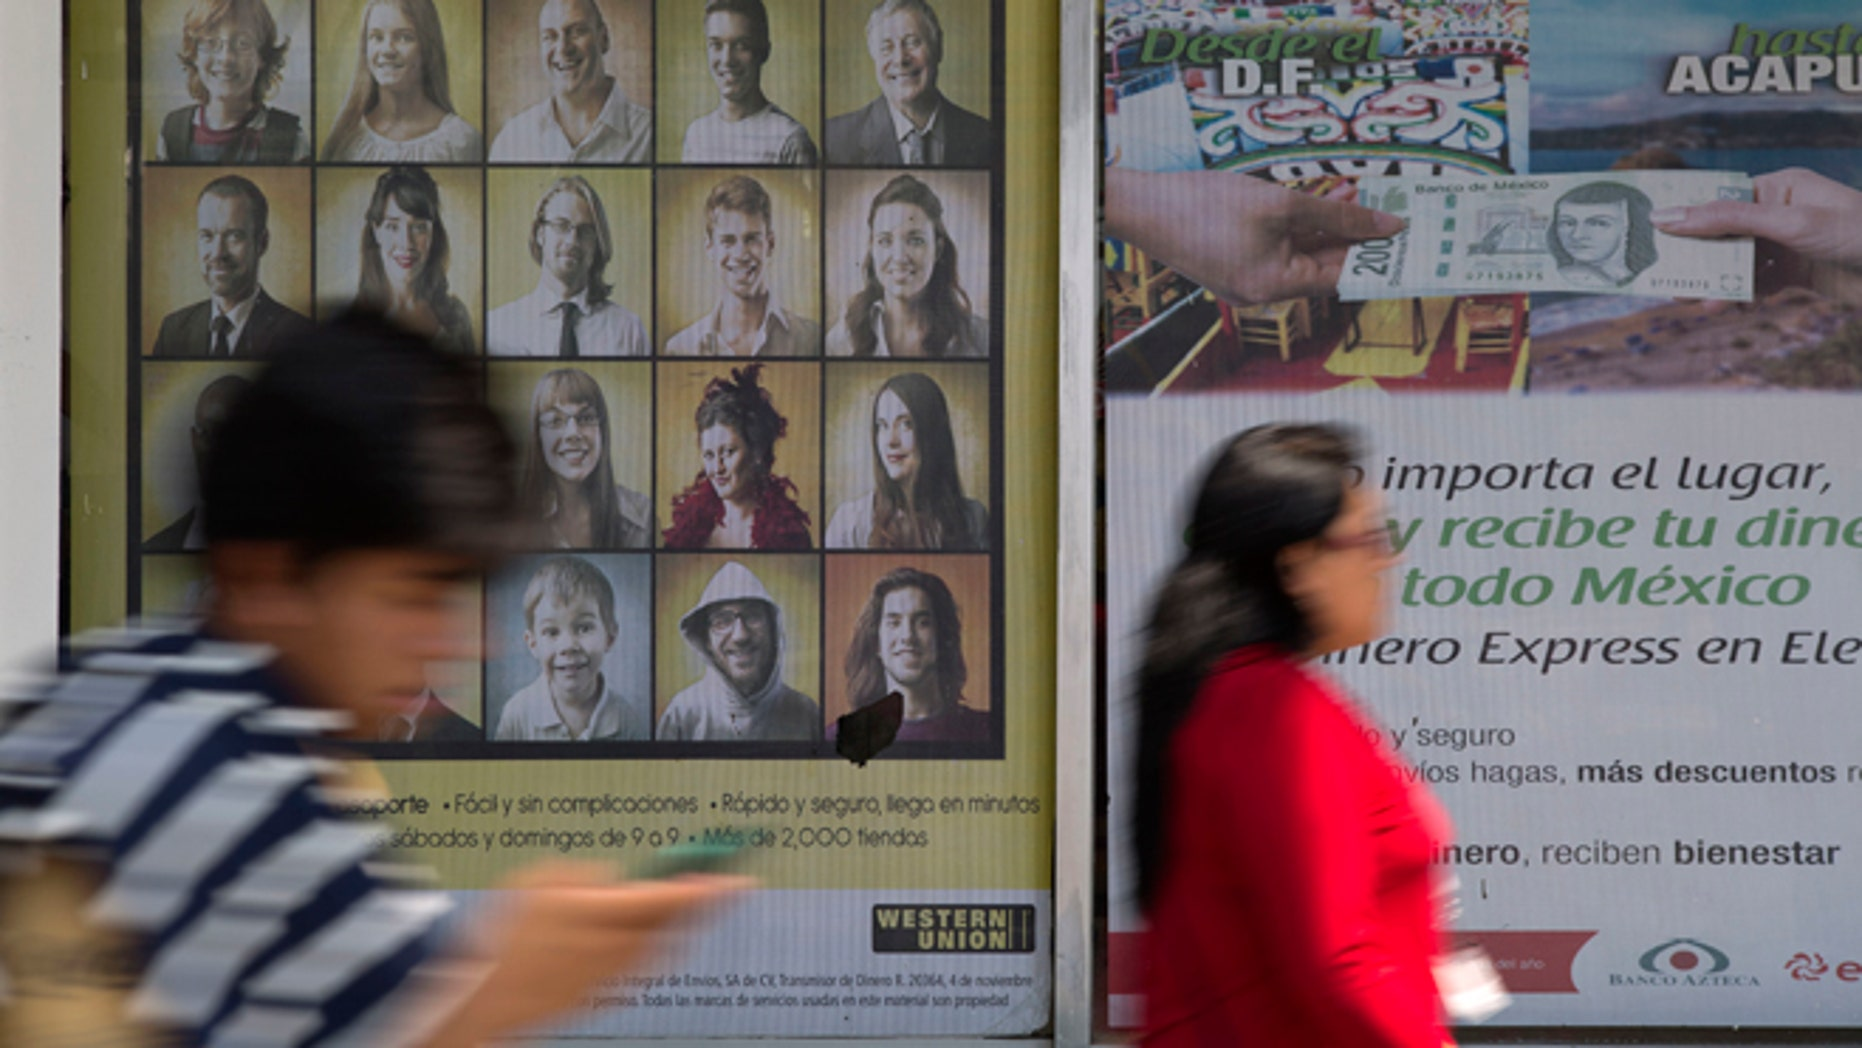 People walk past signs advertising money transfer services outside a business in Mexico City, Tuesday, April 5, 2016. U.S. Republican Presidential frontrunner Donald Trump is threatening to block billions of dollars in U.S. remittances to force Mexico to pay for his proposed border wall. (AP Photo/Rebecca Blackwell)